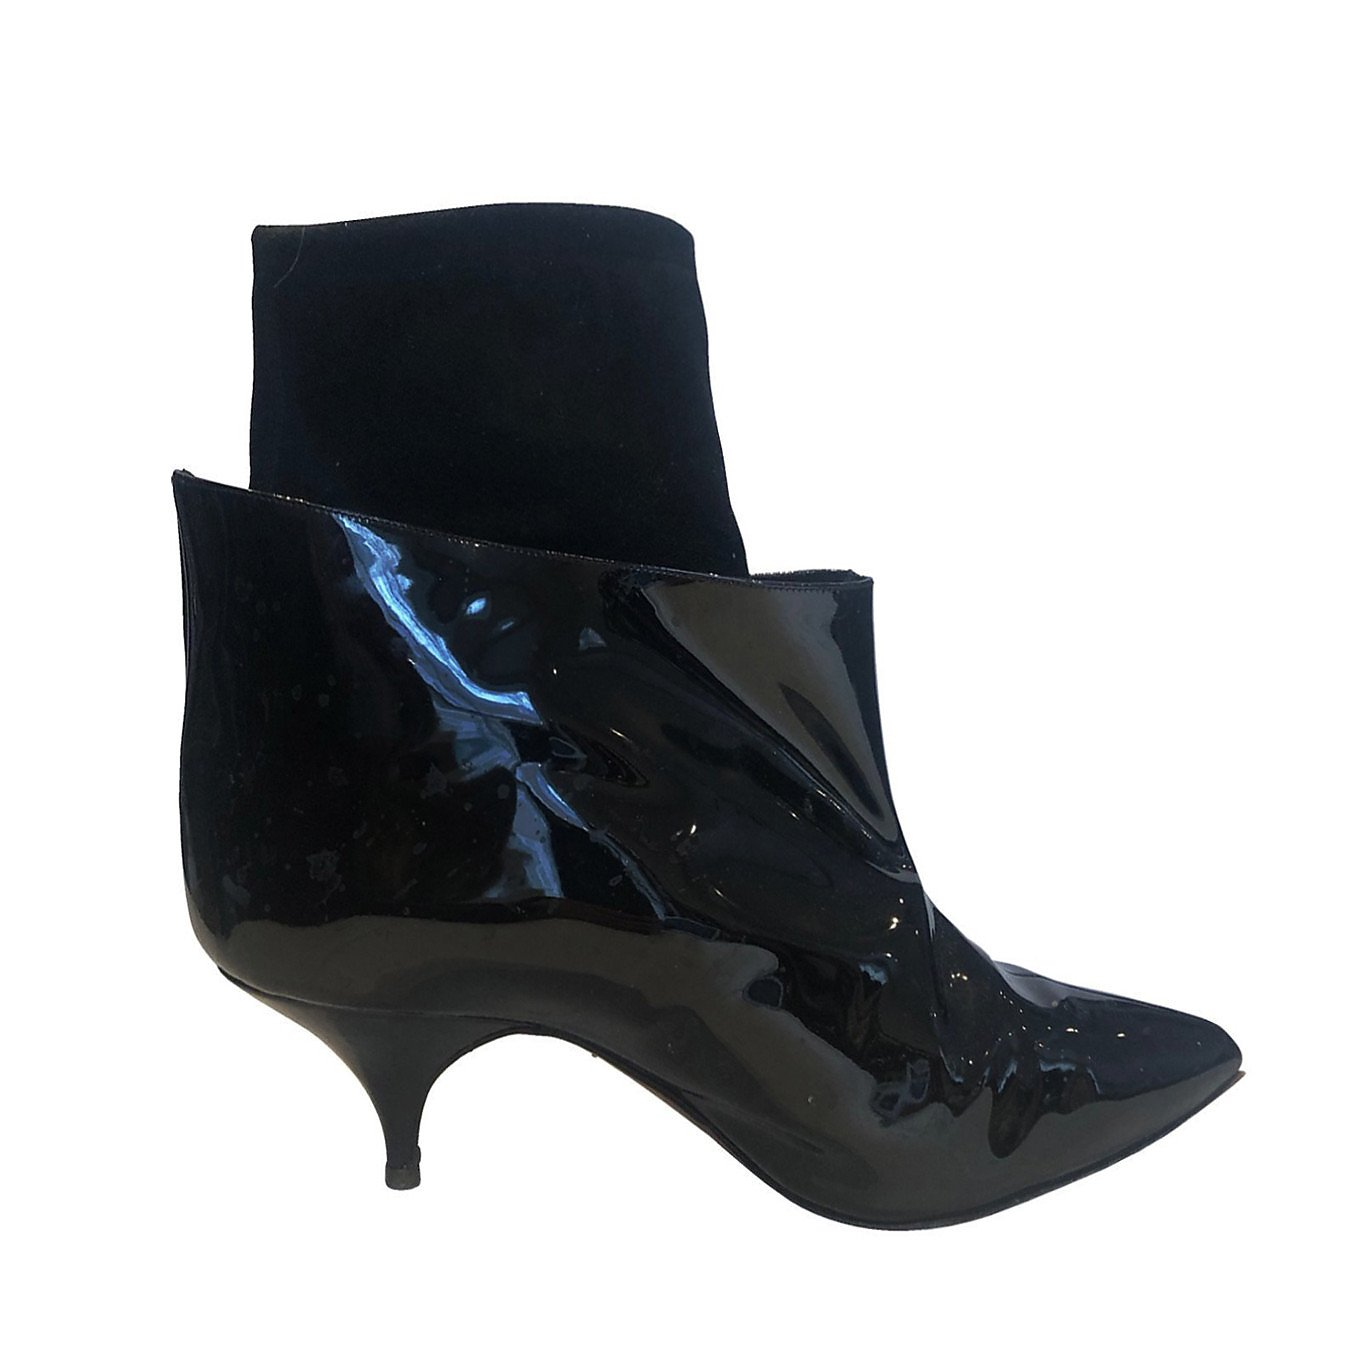 Manolo Blahnik Patent Leather Ankle Boots